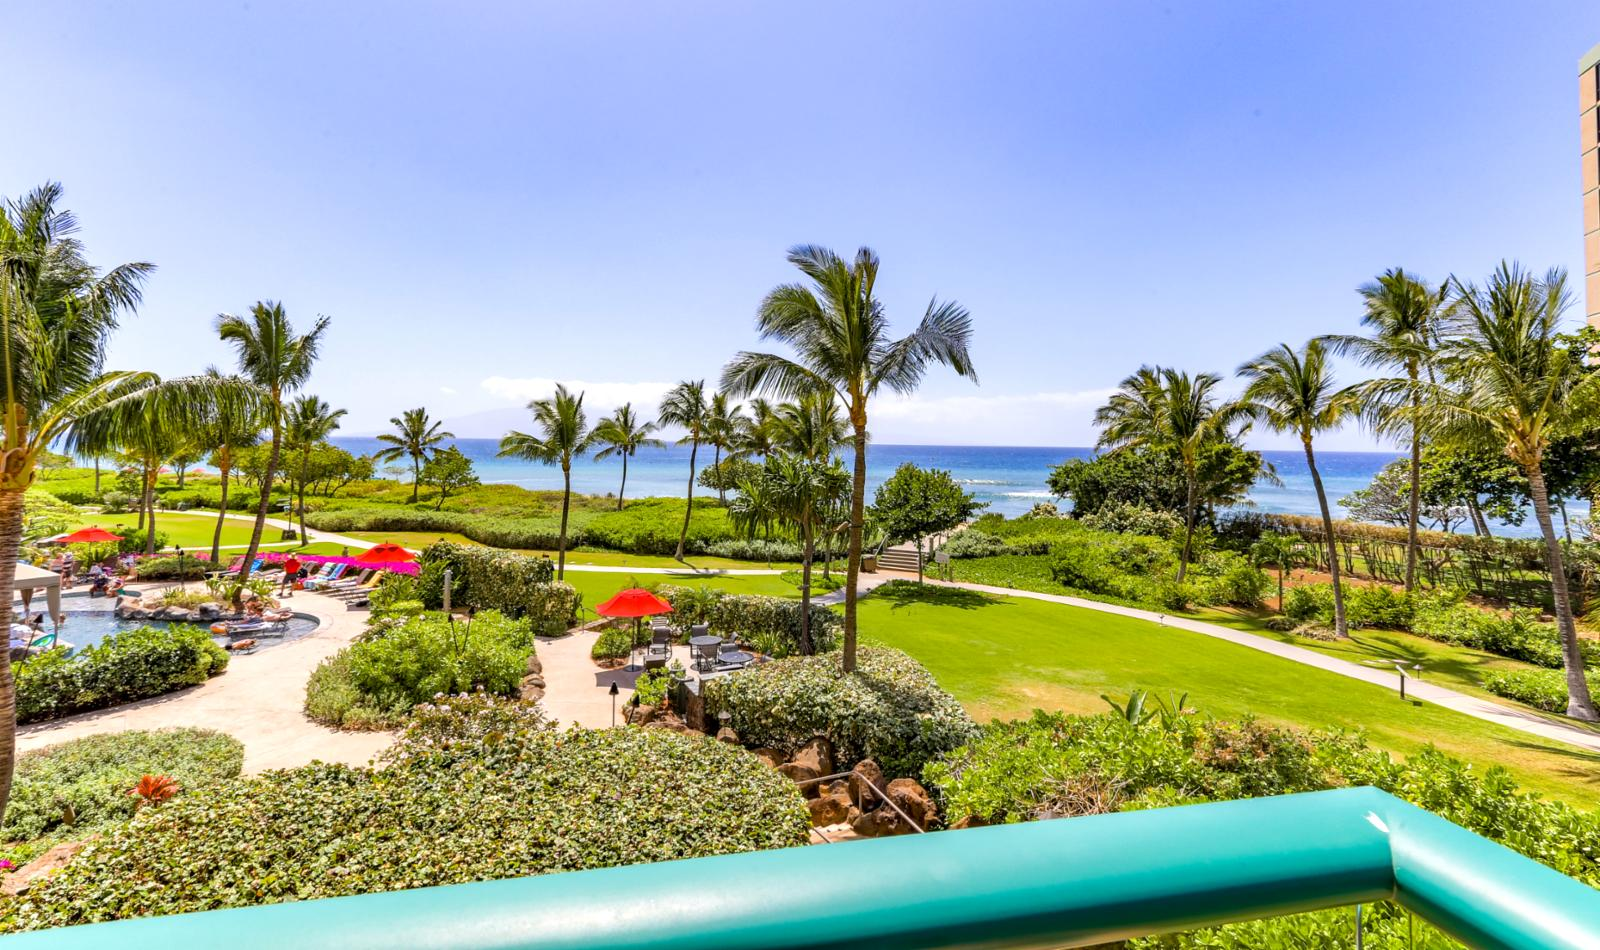 Ocean front living. Listen to the waves just out front on Kaanapali Beach.